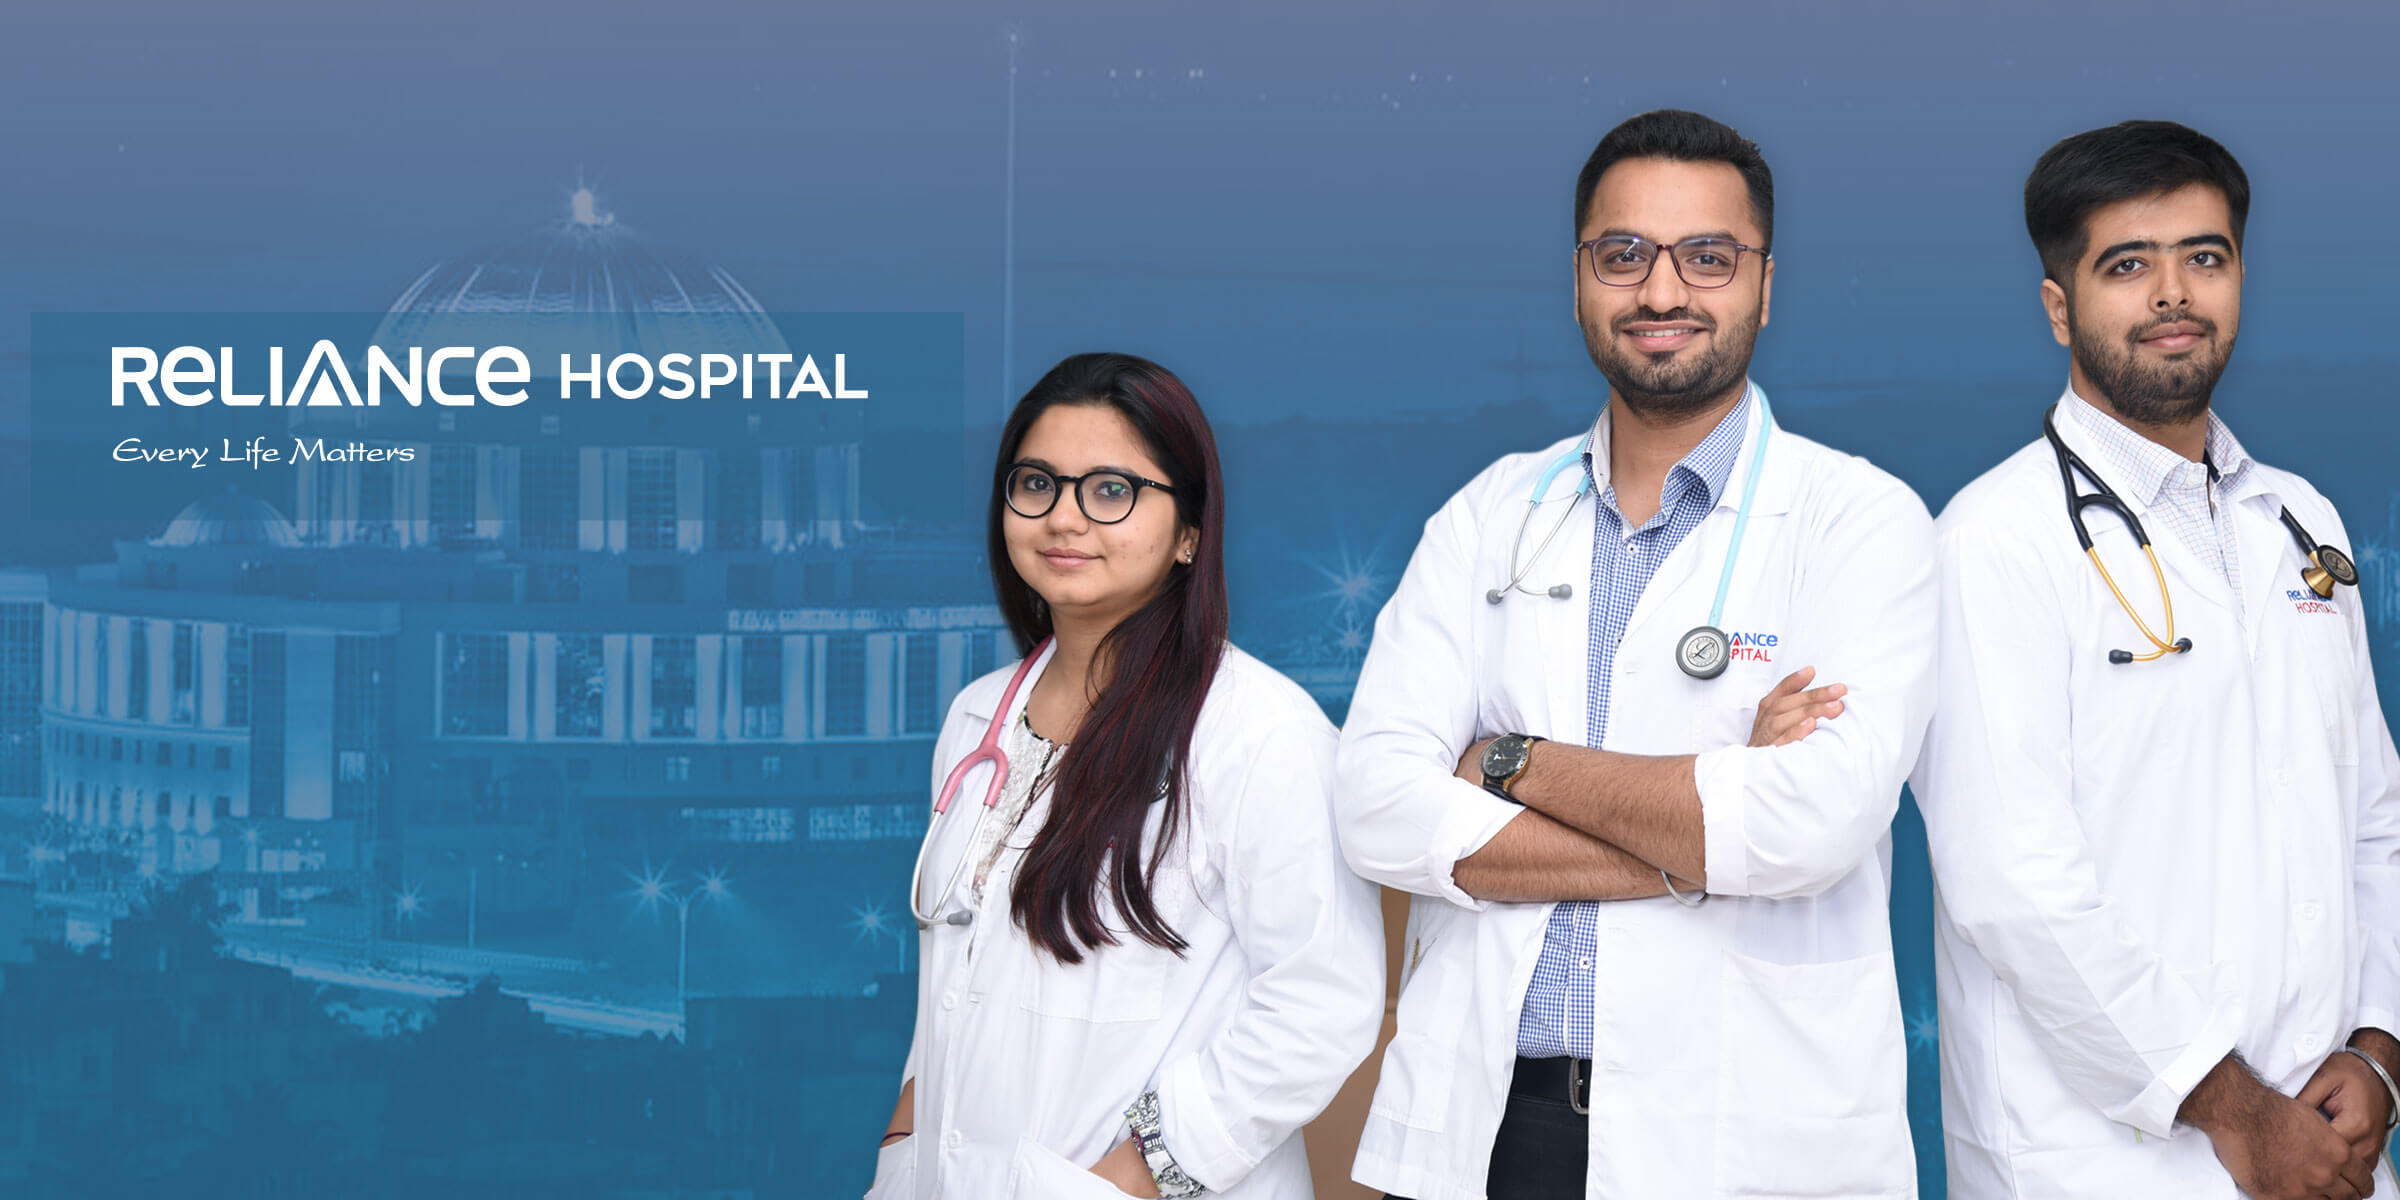 First Image - Reliance Hospital